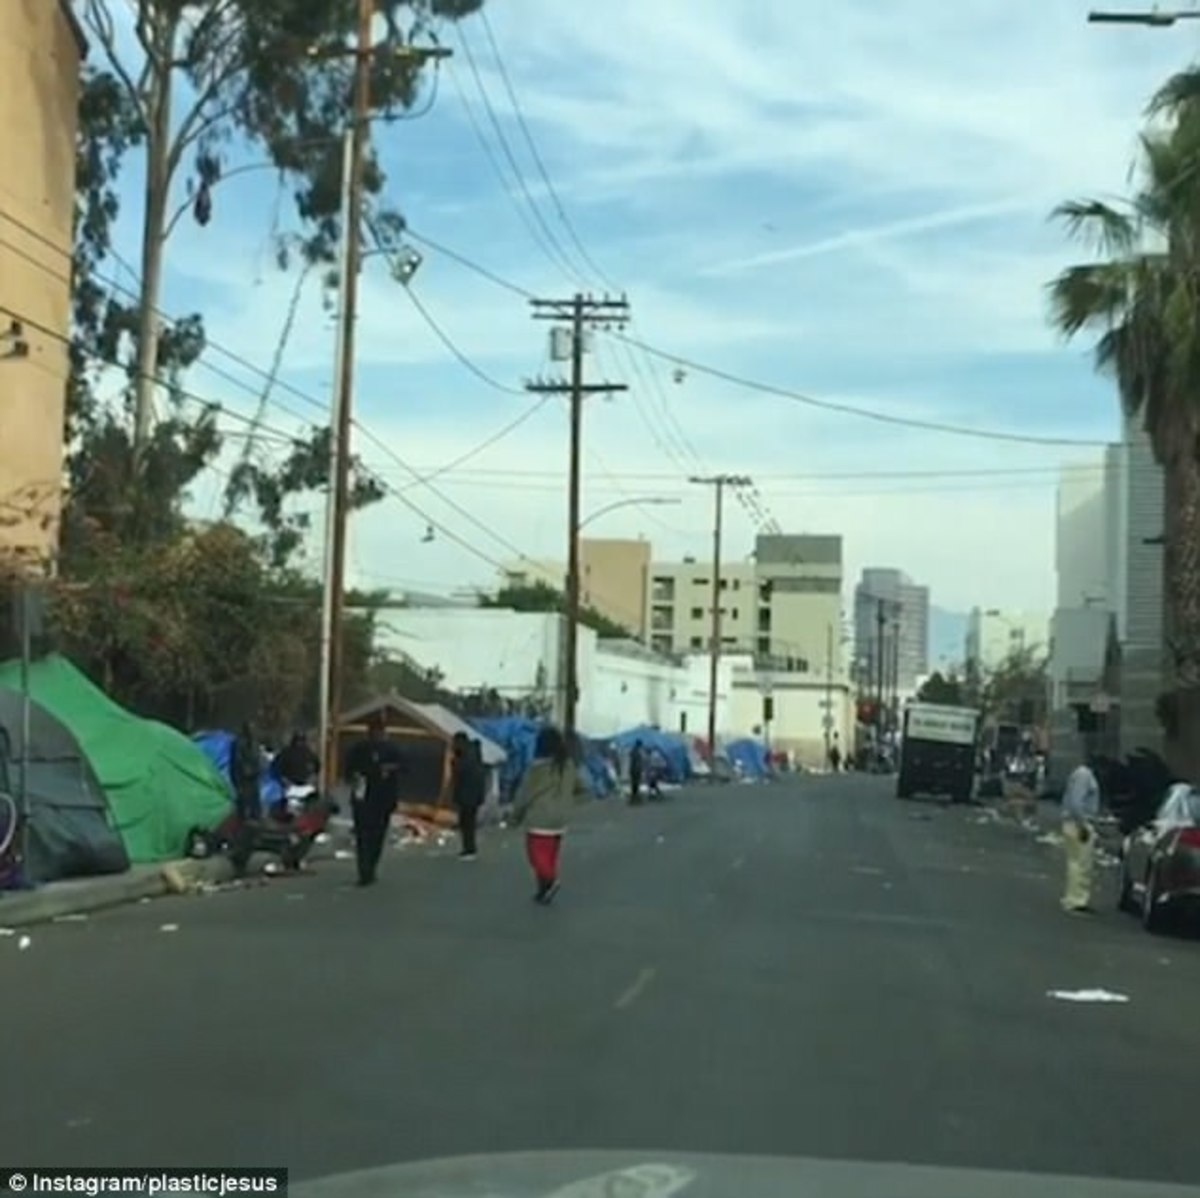 Challenges of Ending Homelessness in America